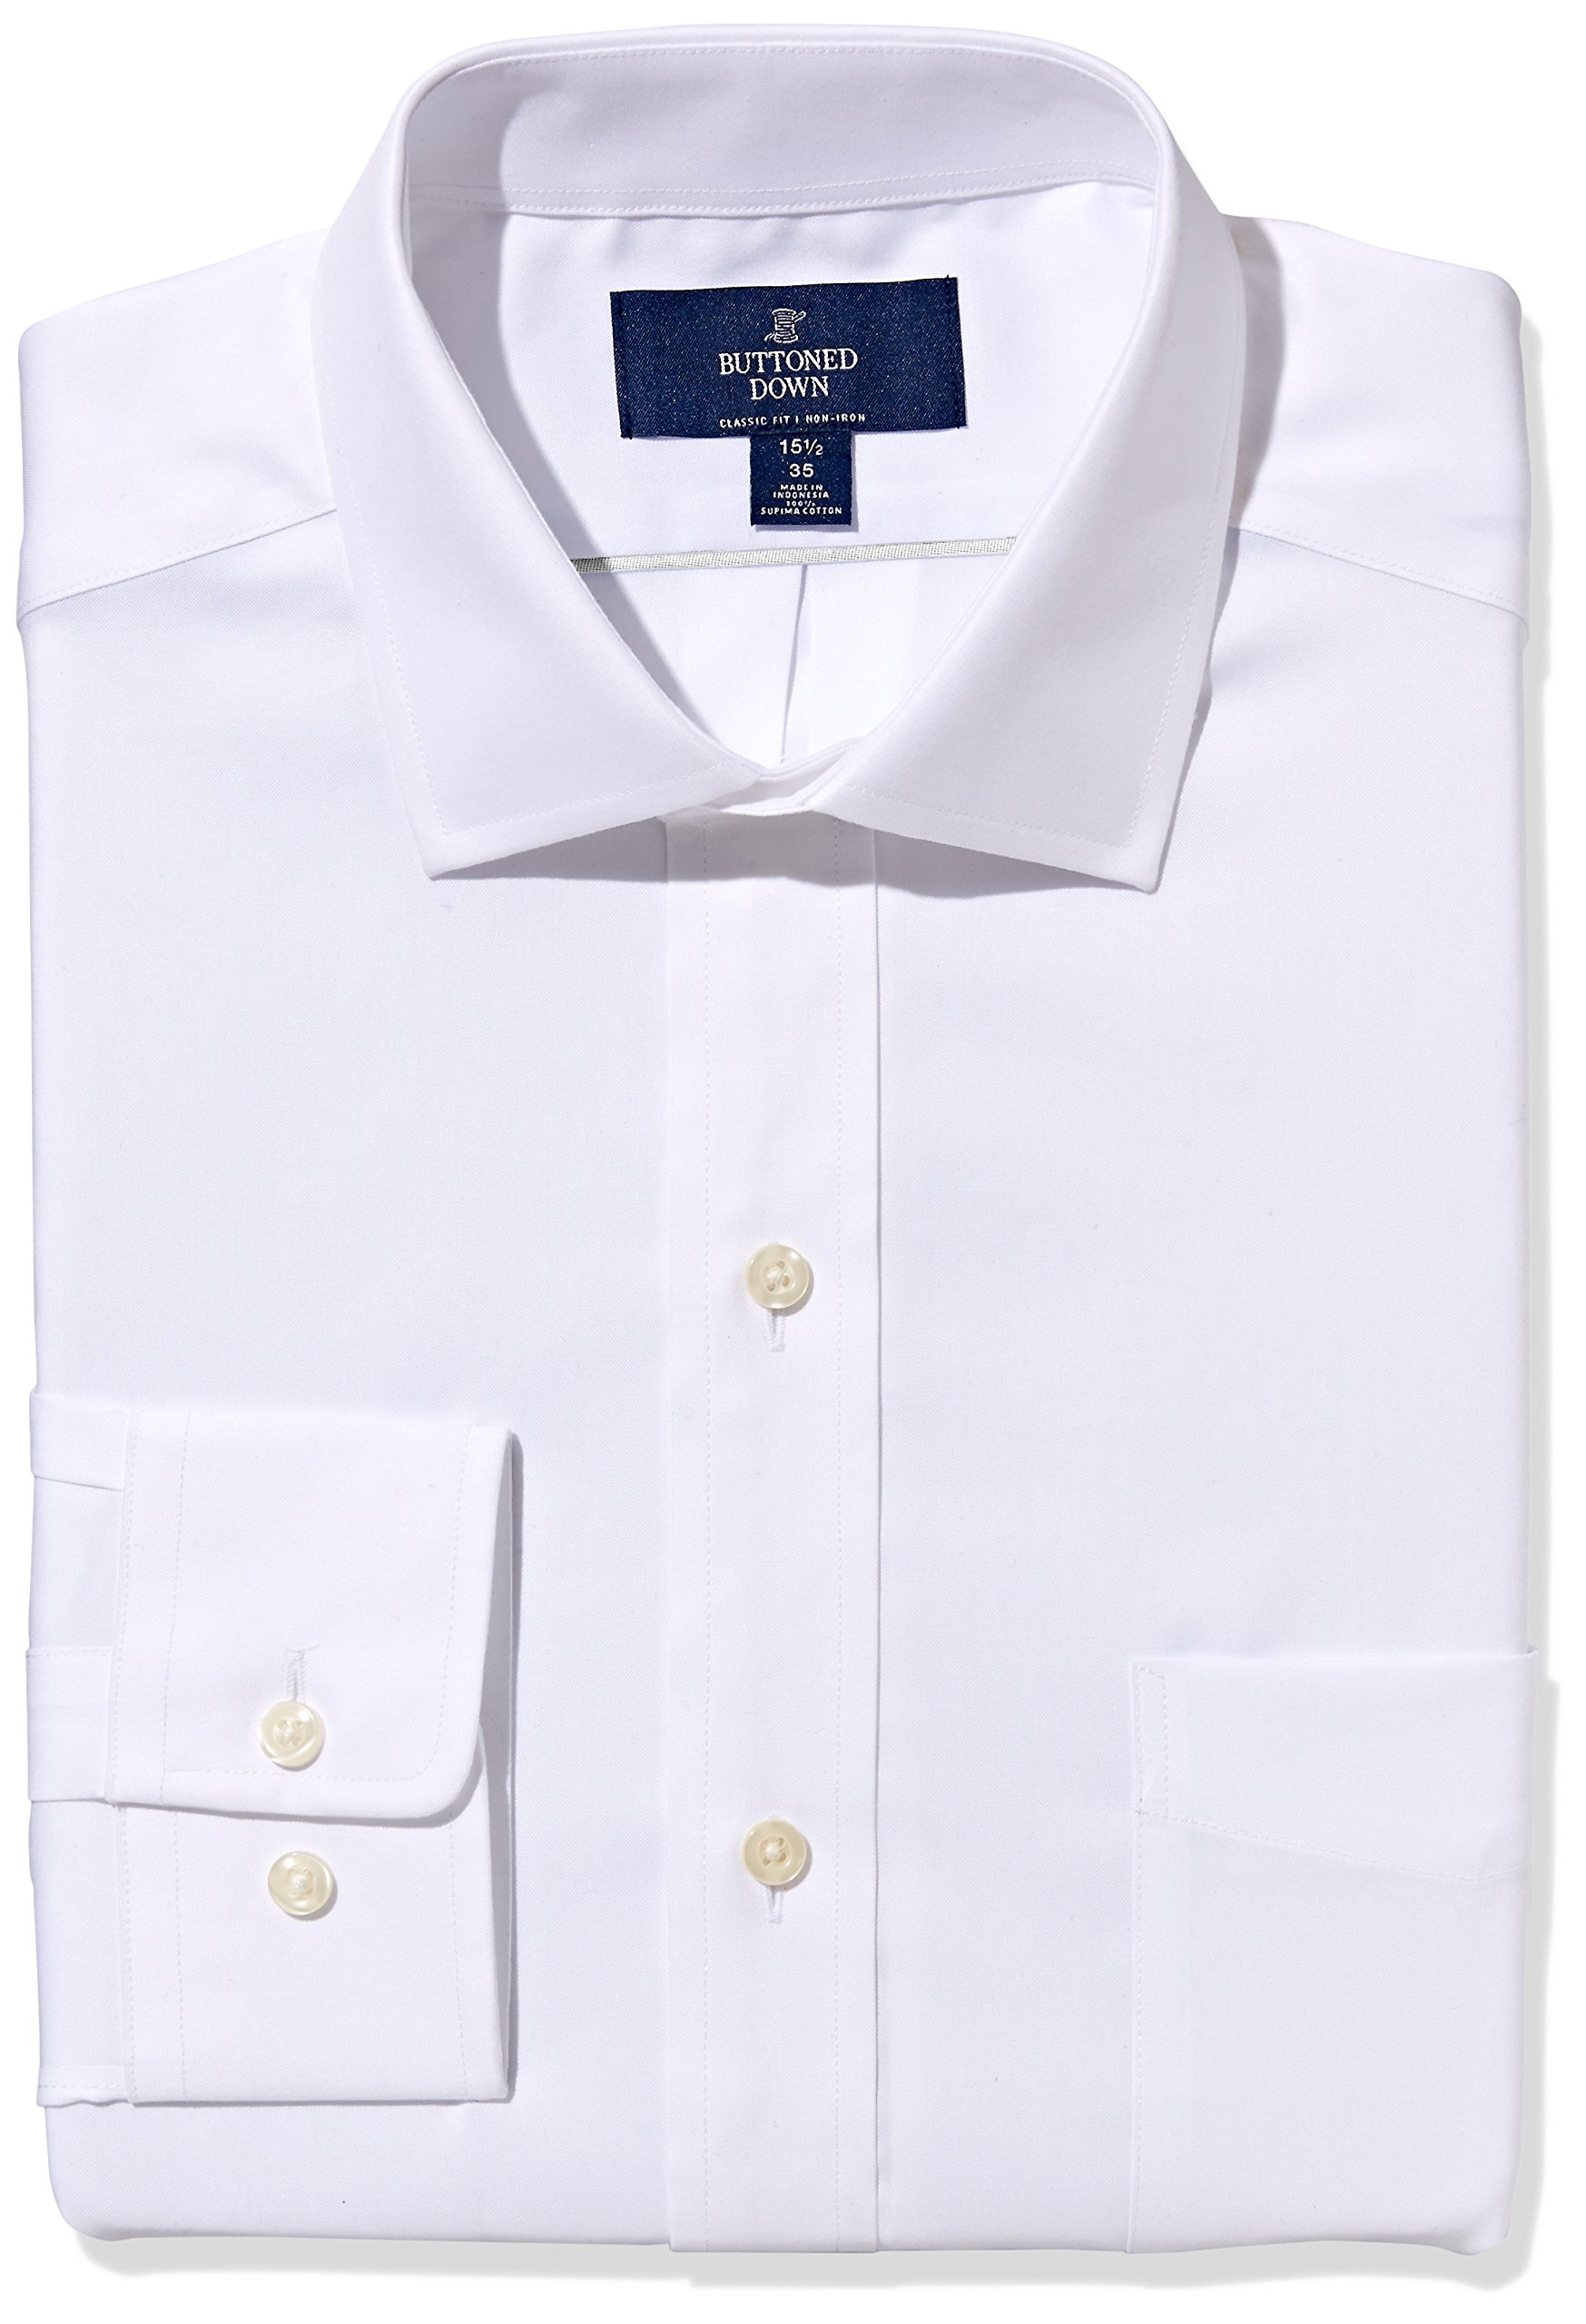 Buttoned Down Men's Classic Fit Spread-Collar Non-Iron Dress Shirt (Pocket), White, 17'' Neck 34'' Sleeve by Buttoned Down